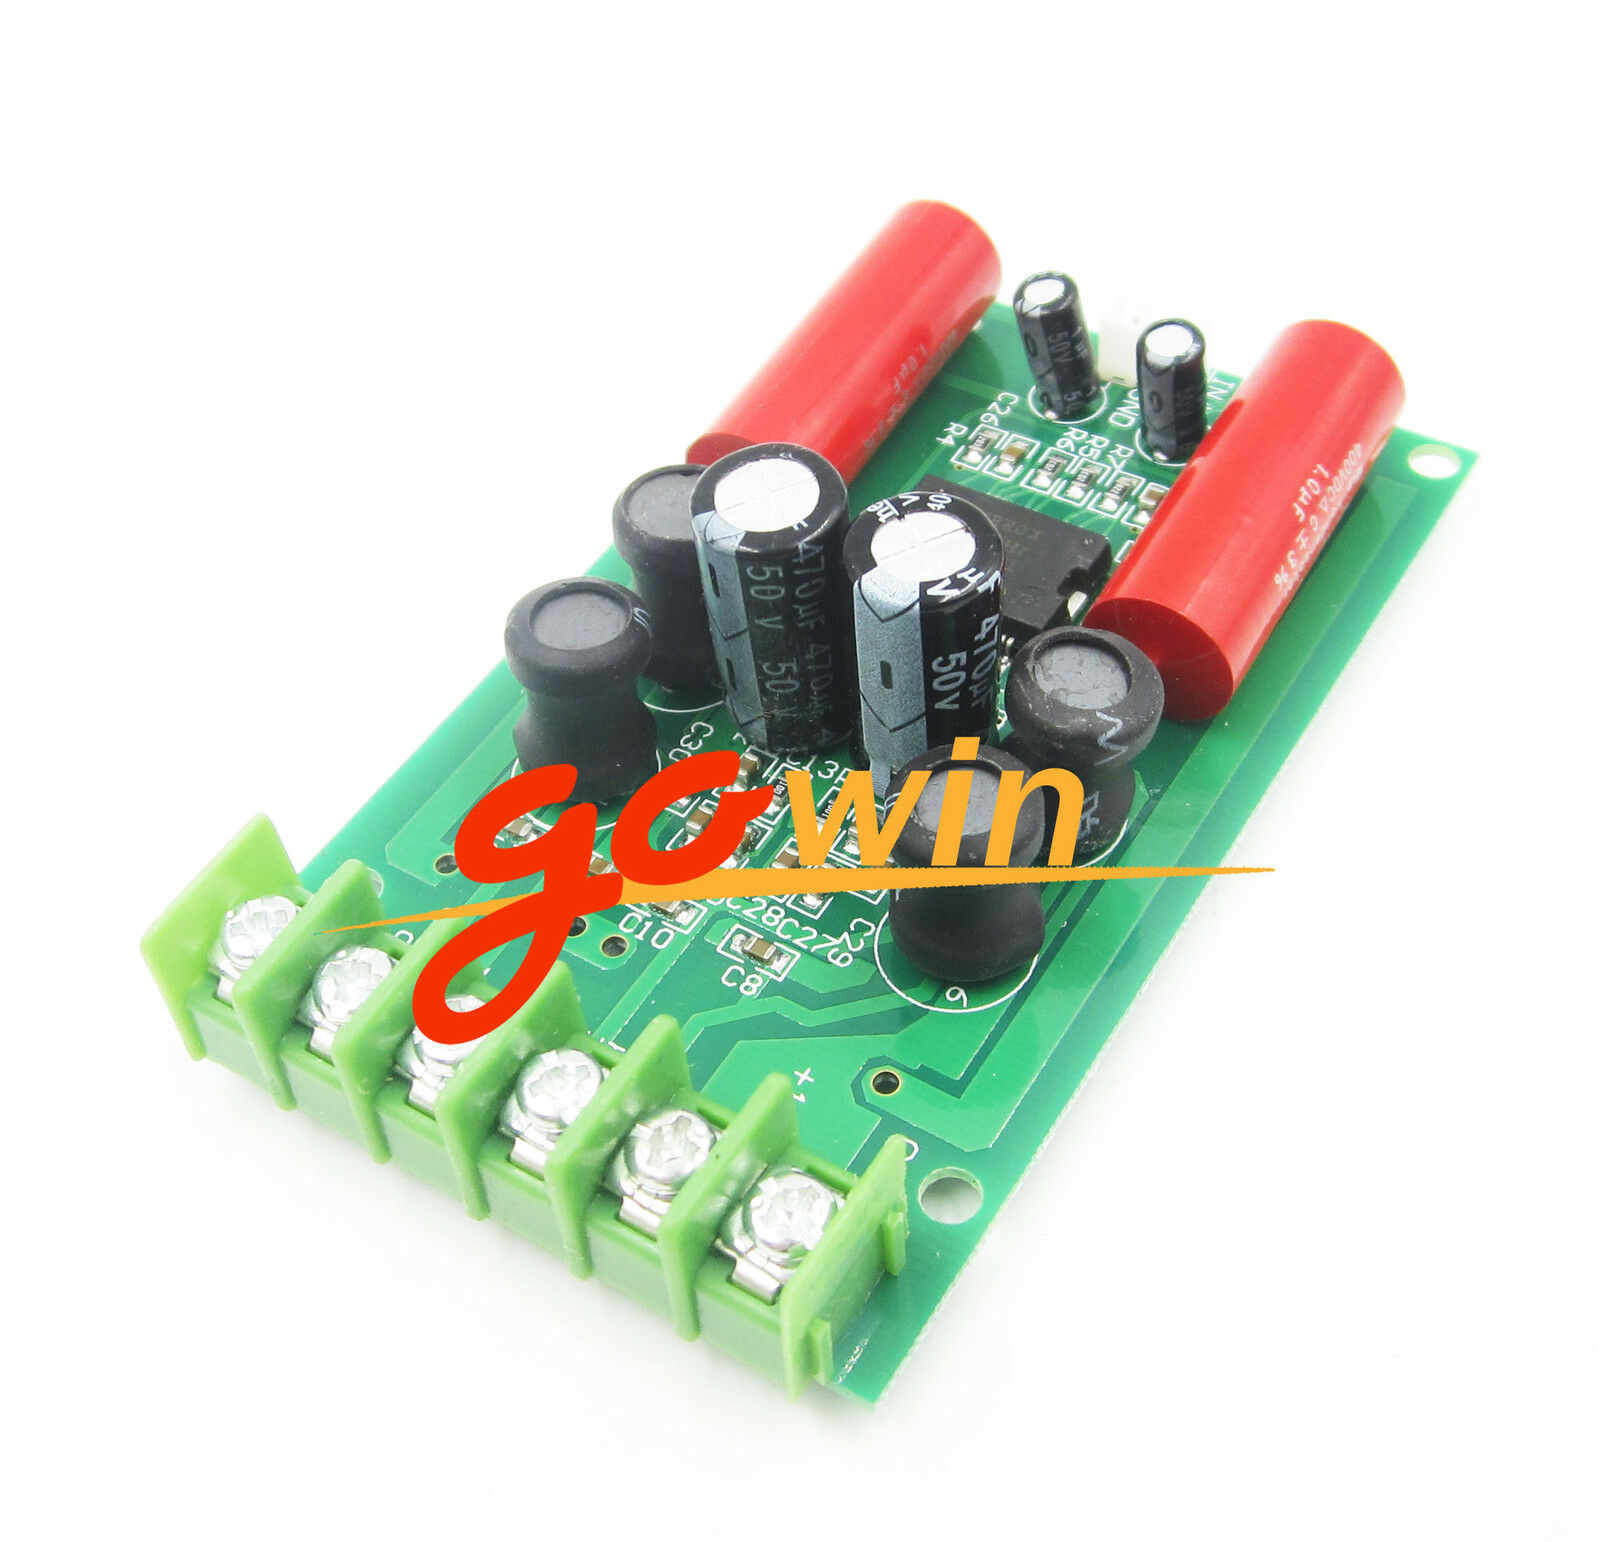 Ta2024 12v 2 X 15w Mini Hifi Digital Audio Amp Amplifier Board Details About Pam8610 Stereo Circuit Norton Secured Powered By Verisign